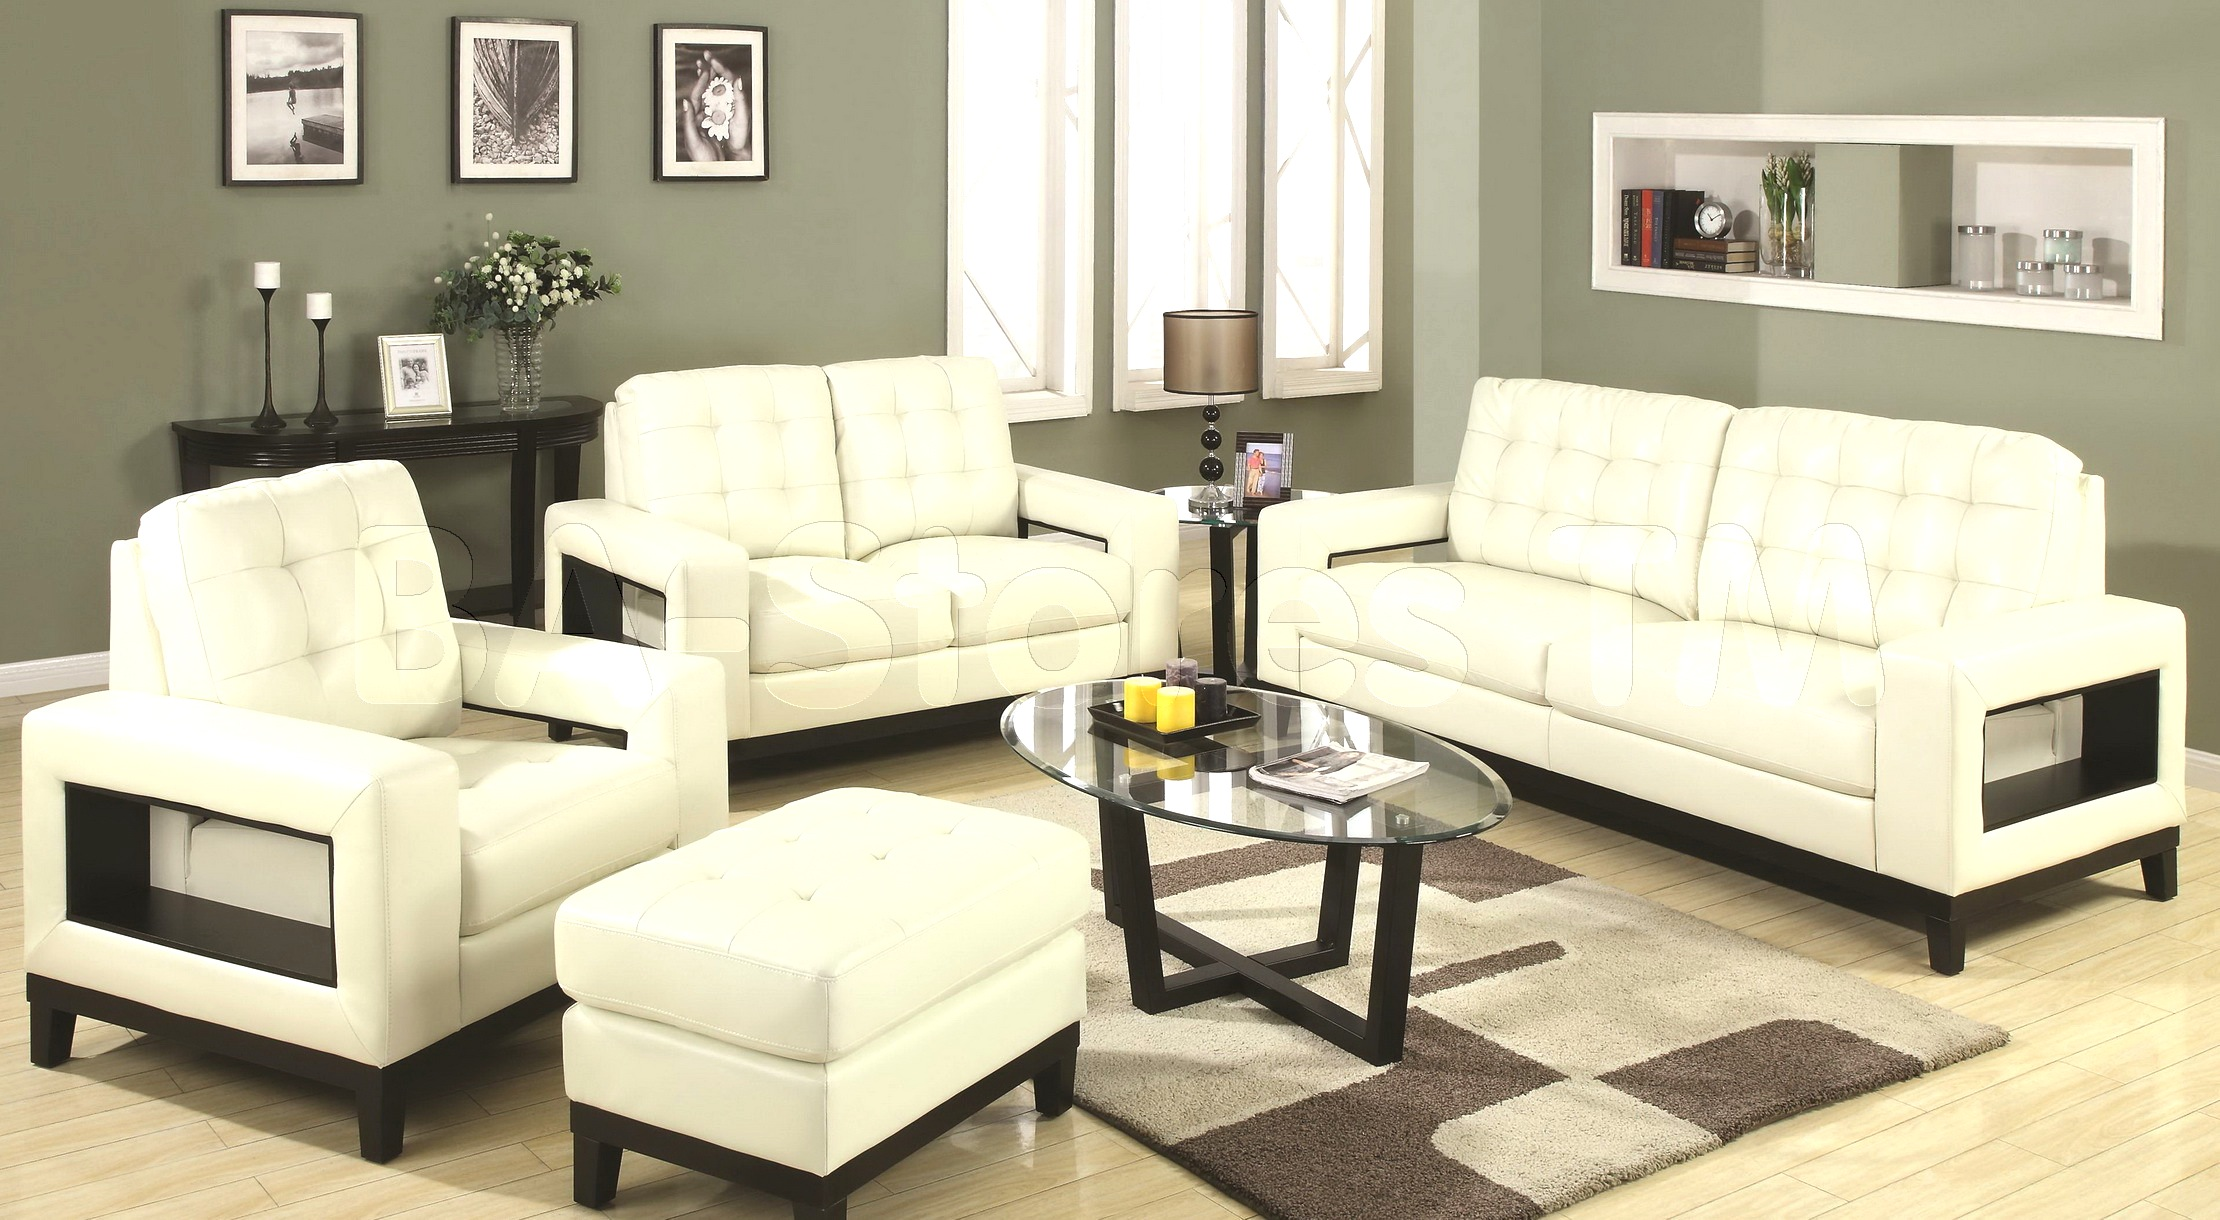 25 Latest Sofa Set Designs For Living Room Furniture Ideas Hgnv Com Part 42